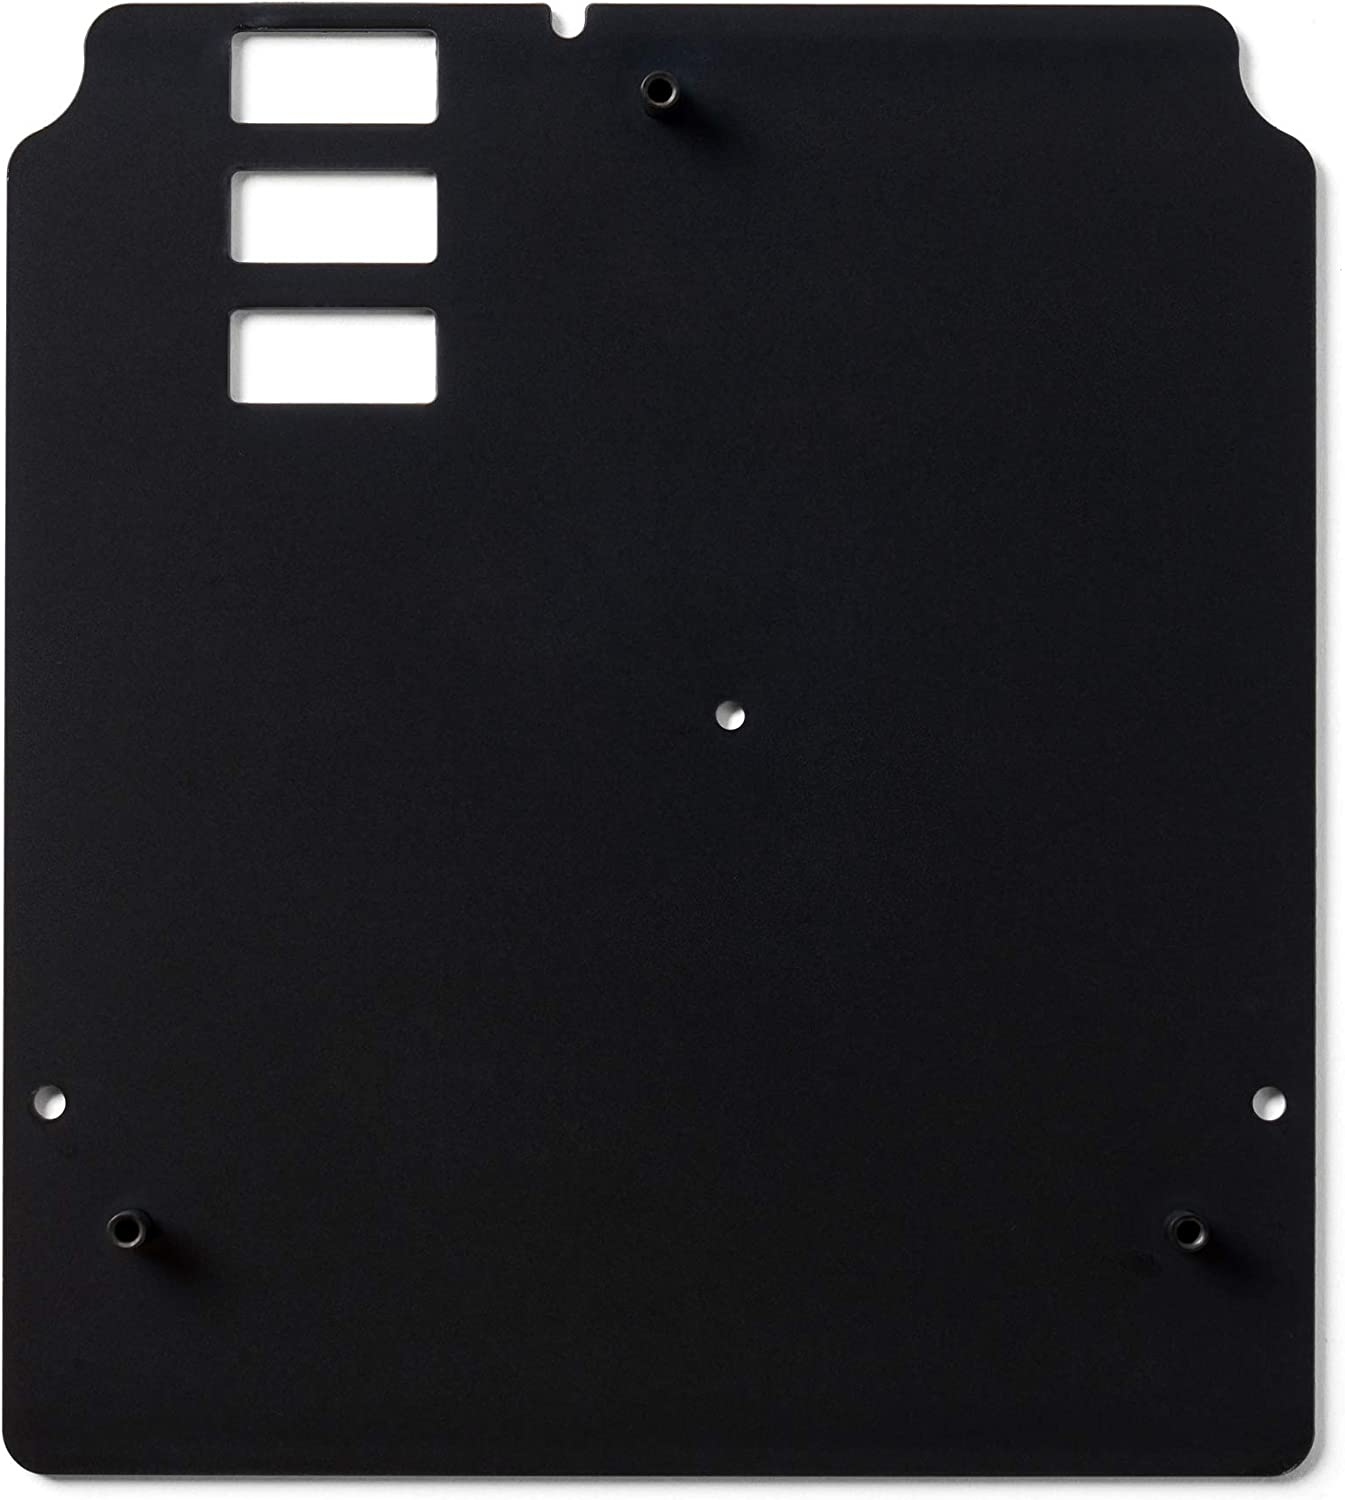 Zebra Mounting Plate Adapter Bracket Kit ZD420d and ZD620d Direct Thermal Desktop Printers to Match Mounting for GK and GX Models P1080383-423